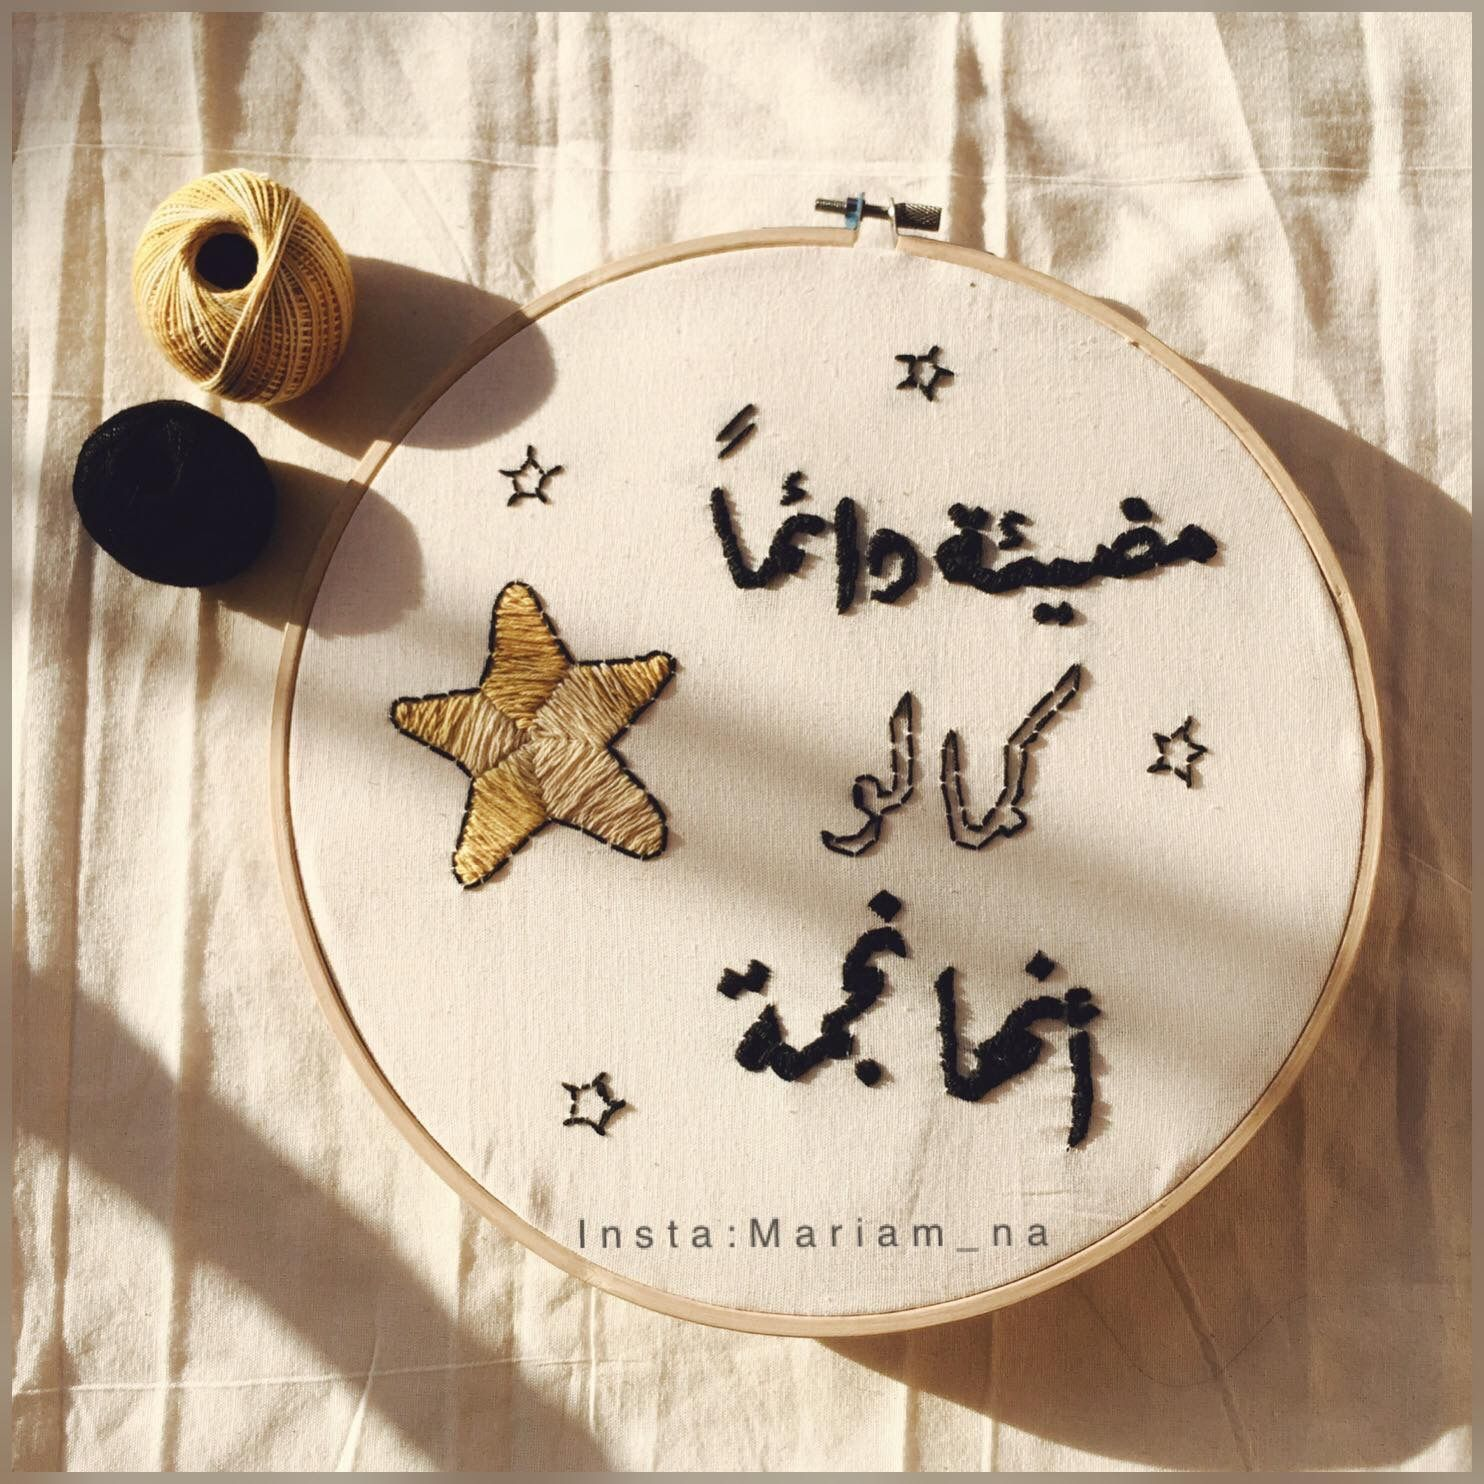 Embroideryhoop Embroidery Embroideryart Embroideryart Embroidery تطريز احسان تطريزات Arabic Quotes Circle Quotes Hand Embroidery Videos